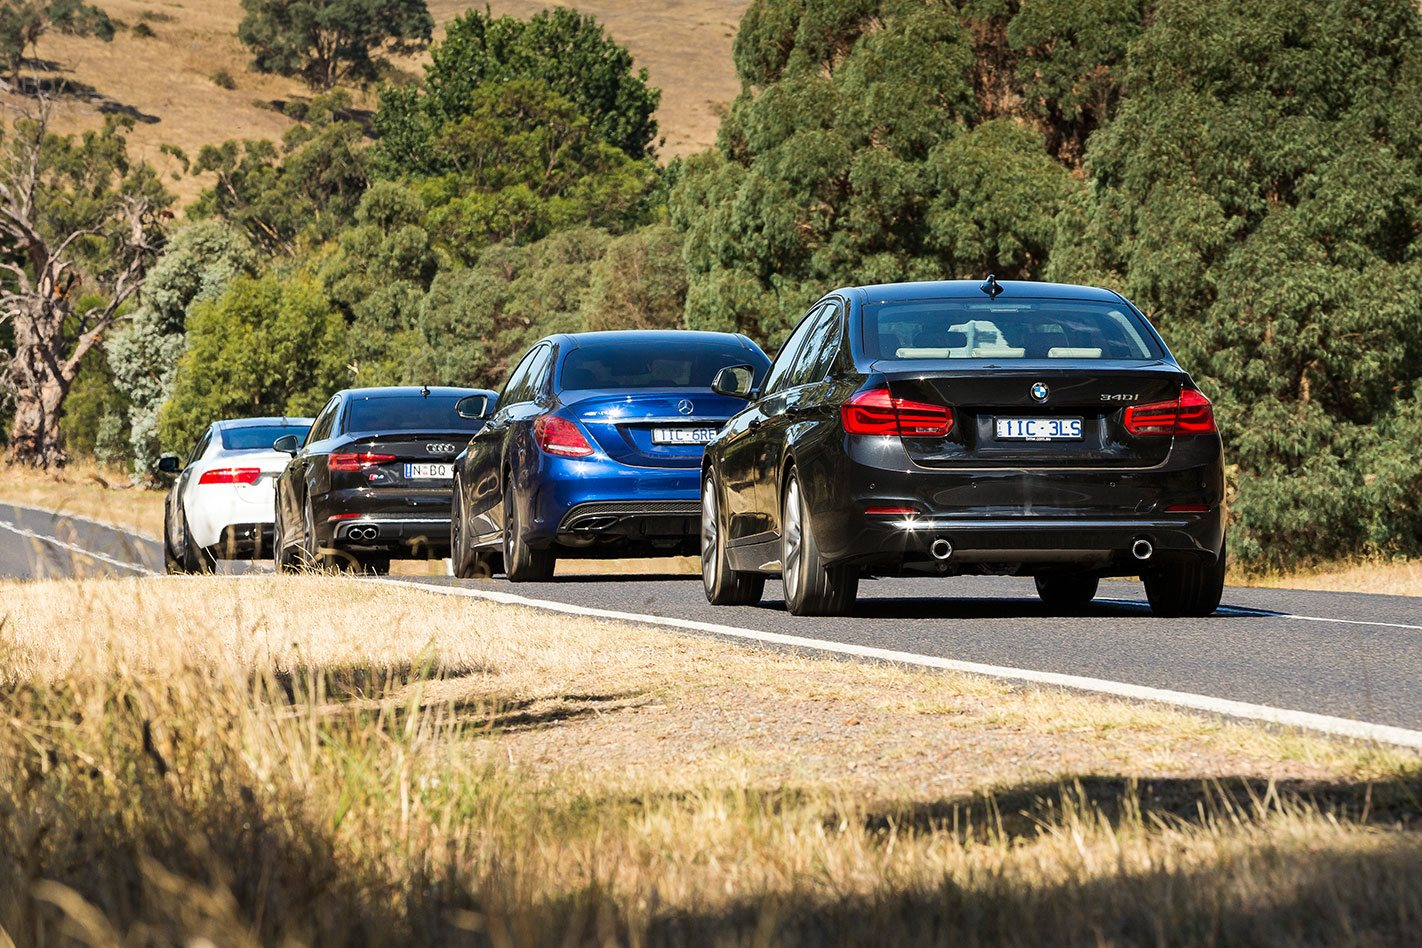 Jaguar XE S vs BMW 340i vs Mercedes-AMG C43 vs Audi S4  rear